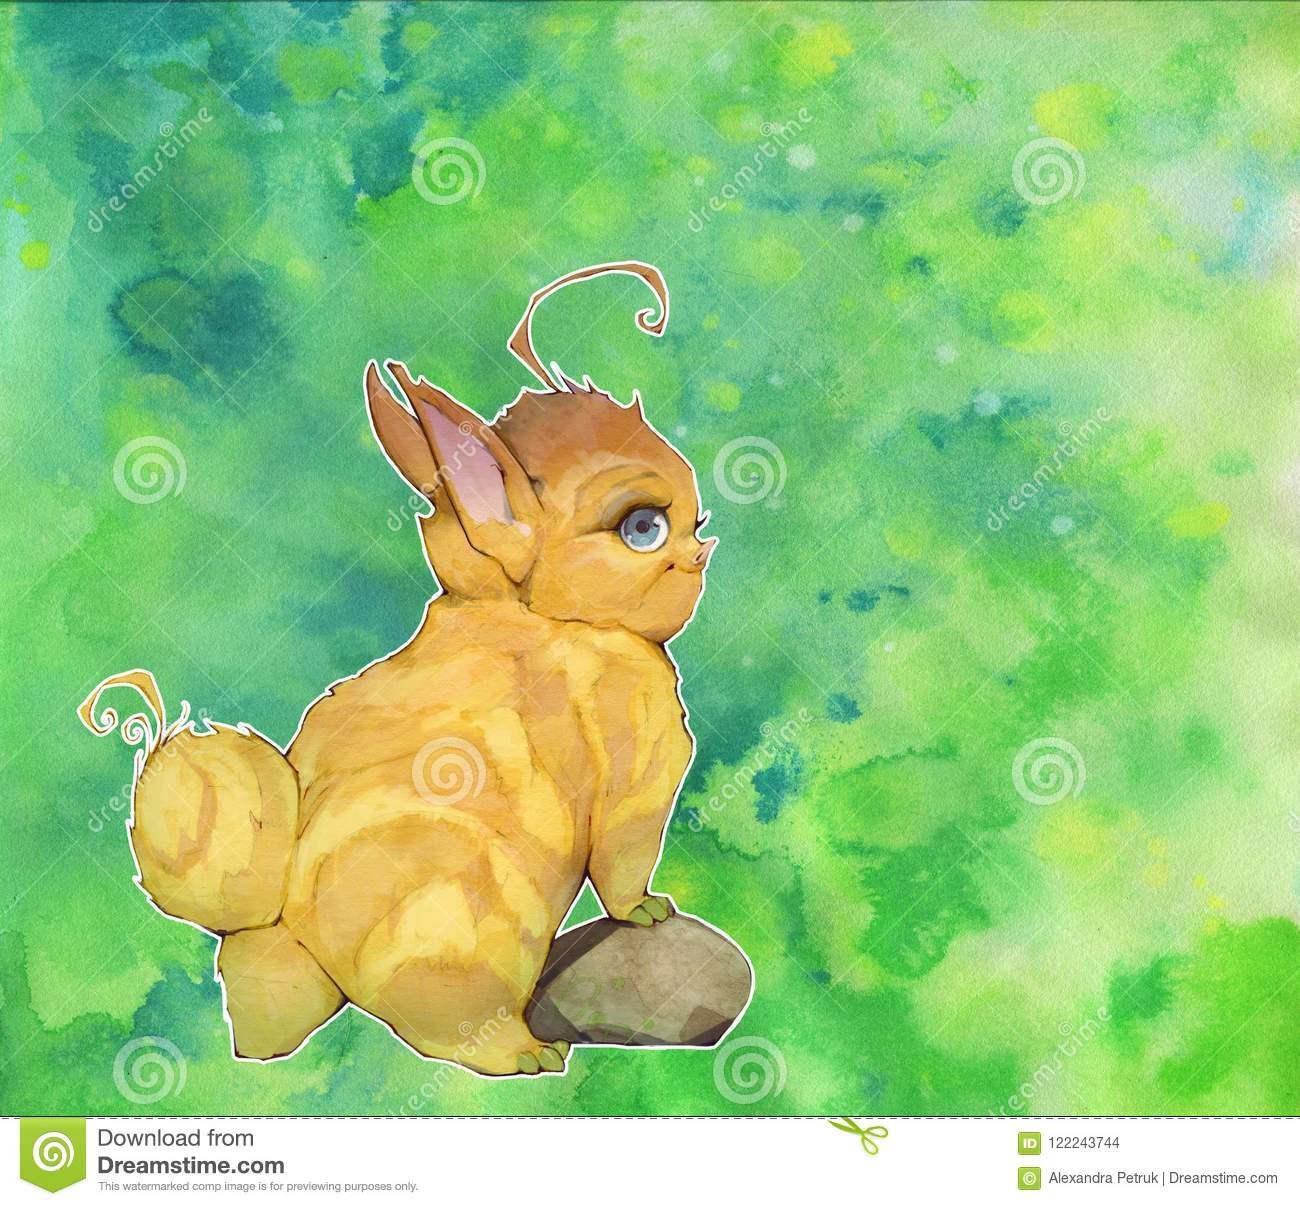 Hand Drawn Cartoon Anime Illustration Of A Cute Fantasy Baby Animals Looking Like Bunnies